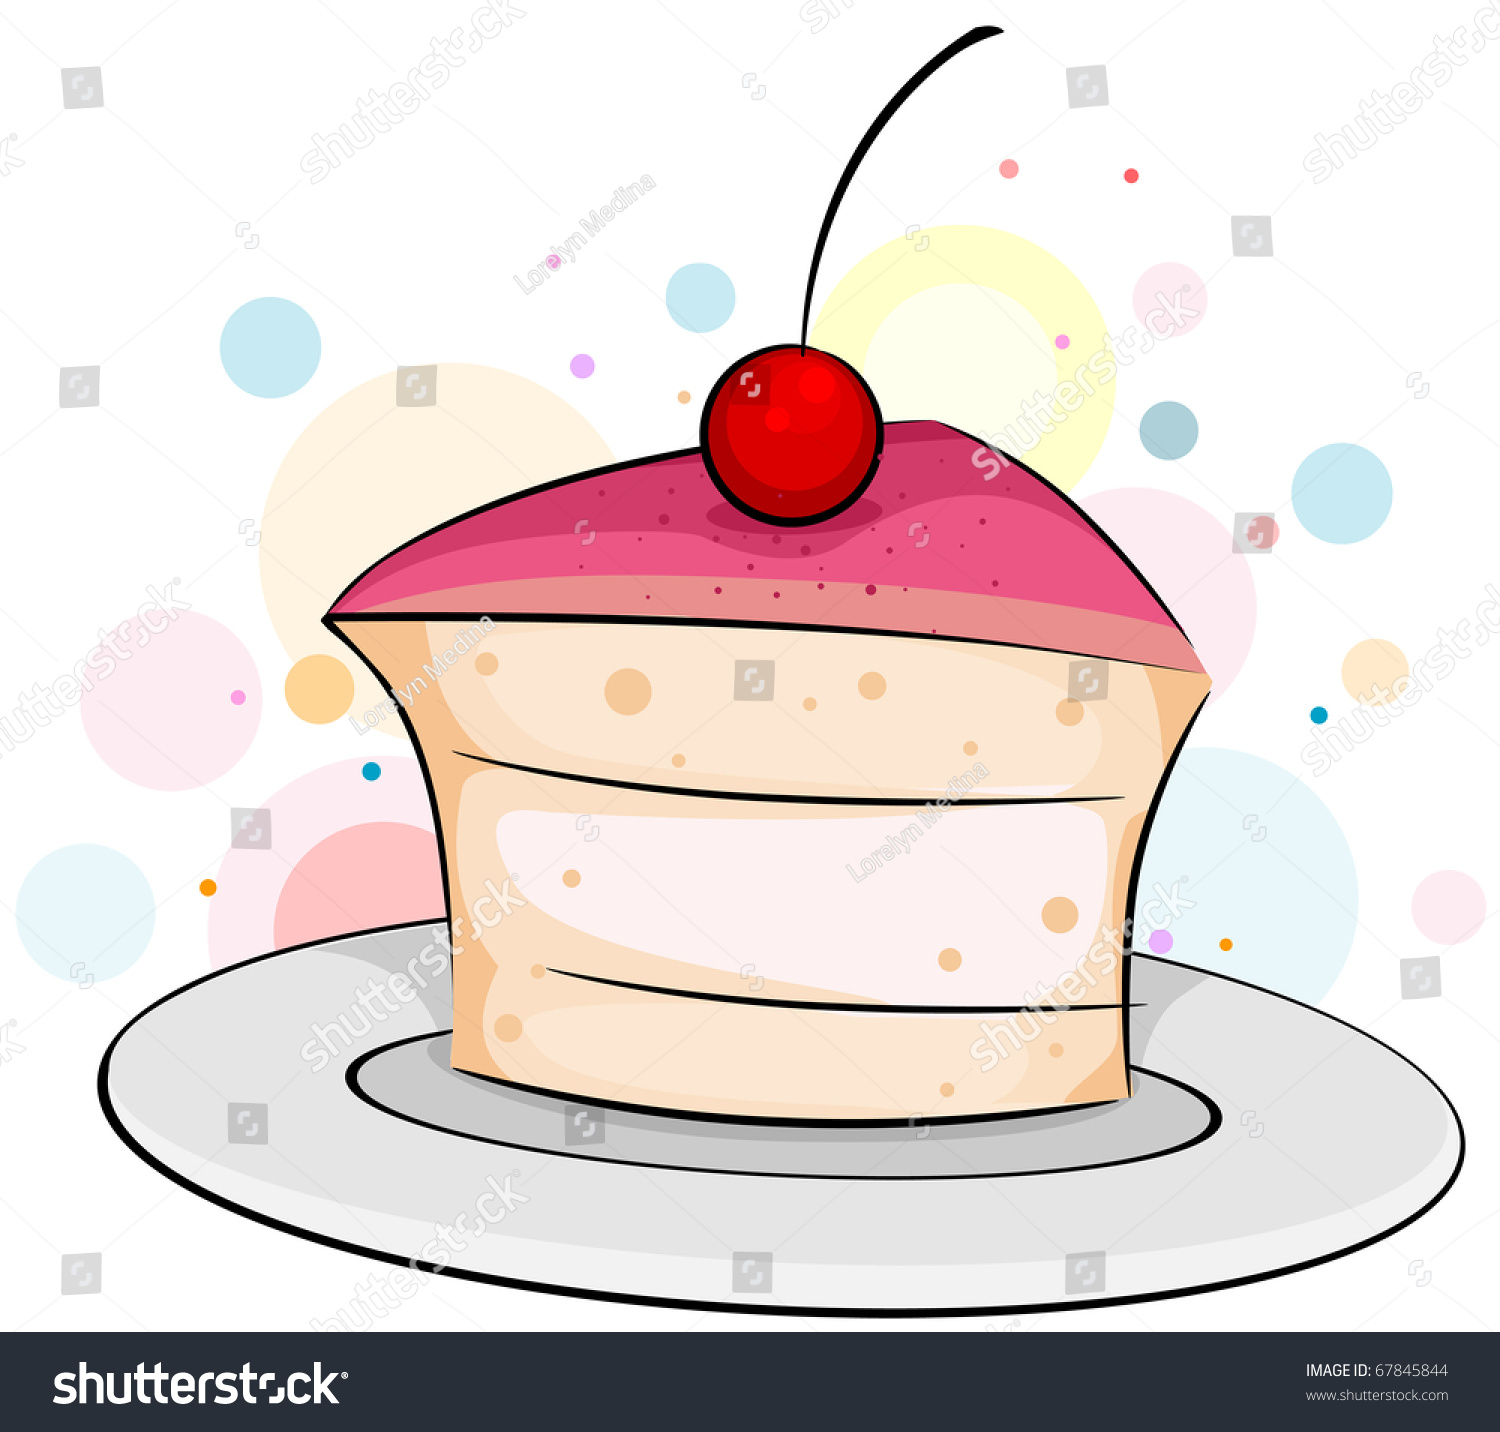 hight resolution of illustration of a slice of cake with a cherry on top